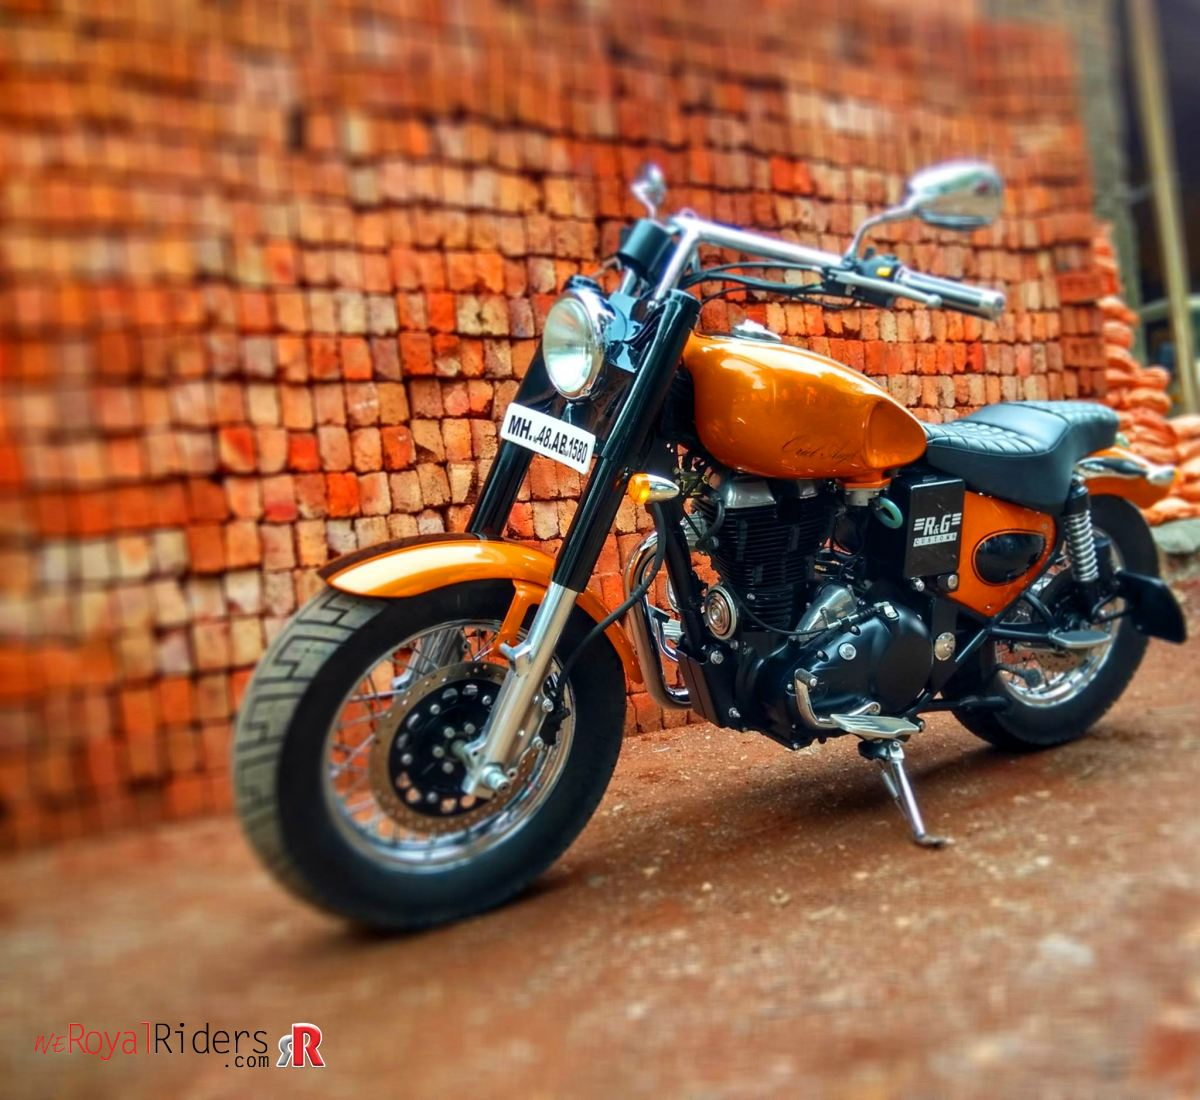 Oriel Angel – Custom Royal Enfield Classic 500 turned into heavy